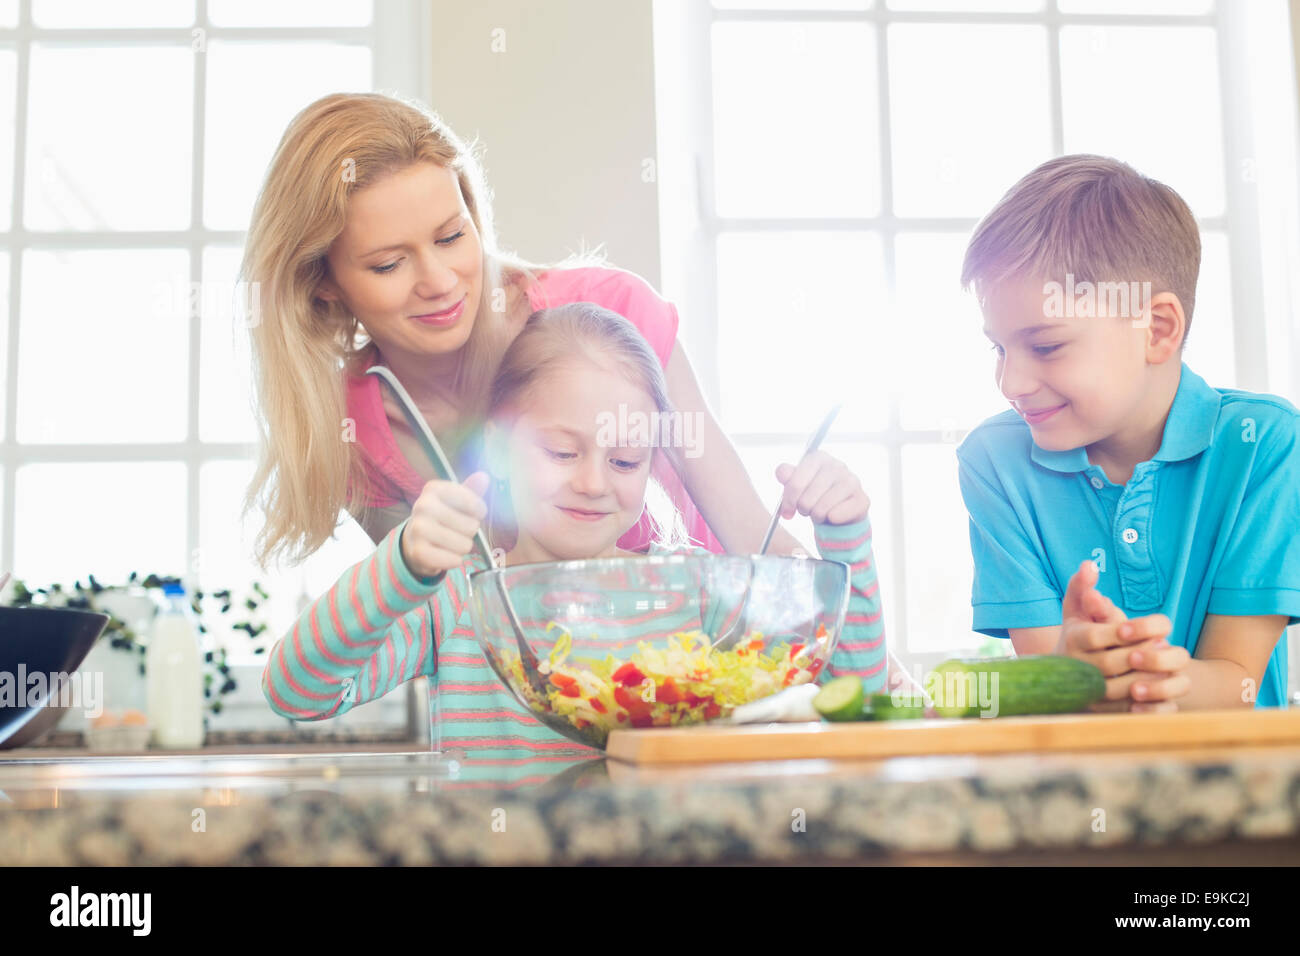 Family looking at girl mixing salad in kitchen Stock Photo